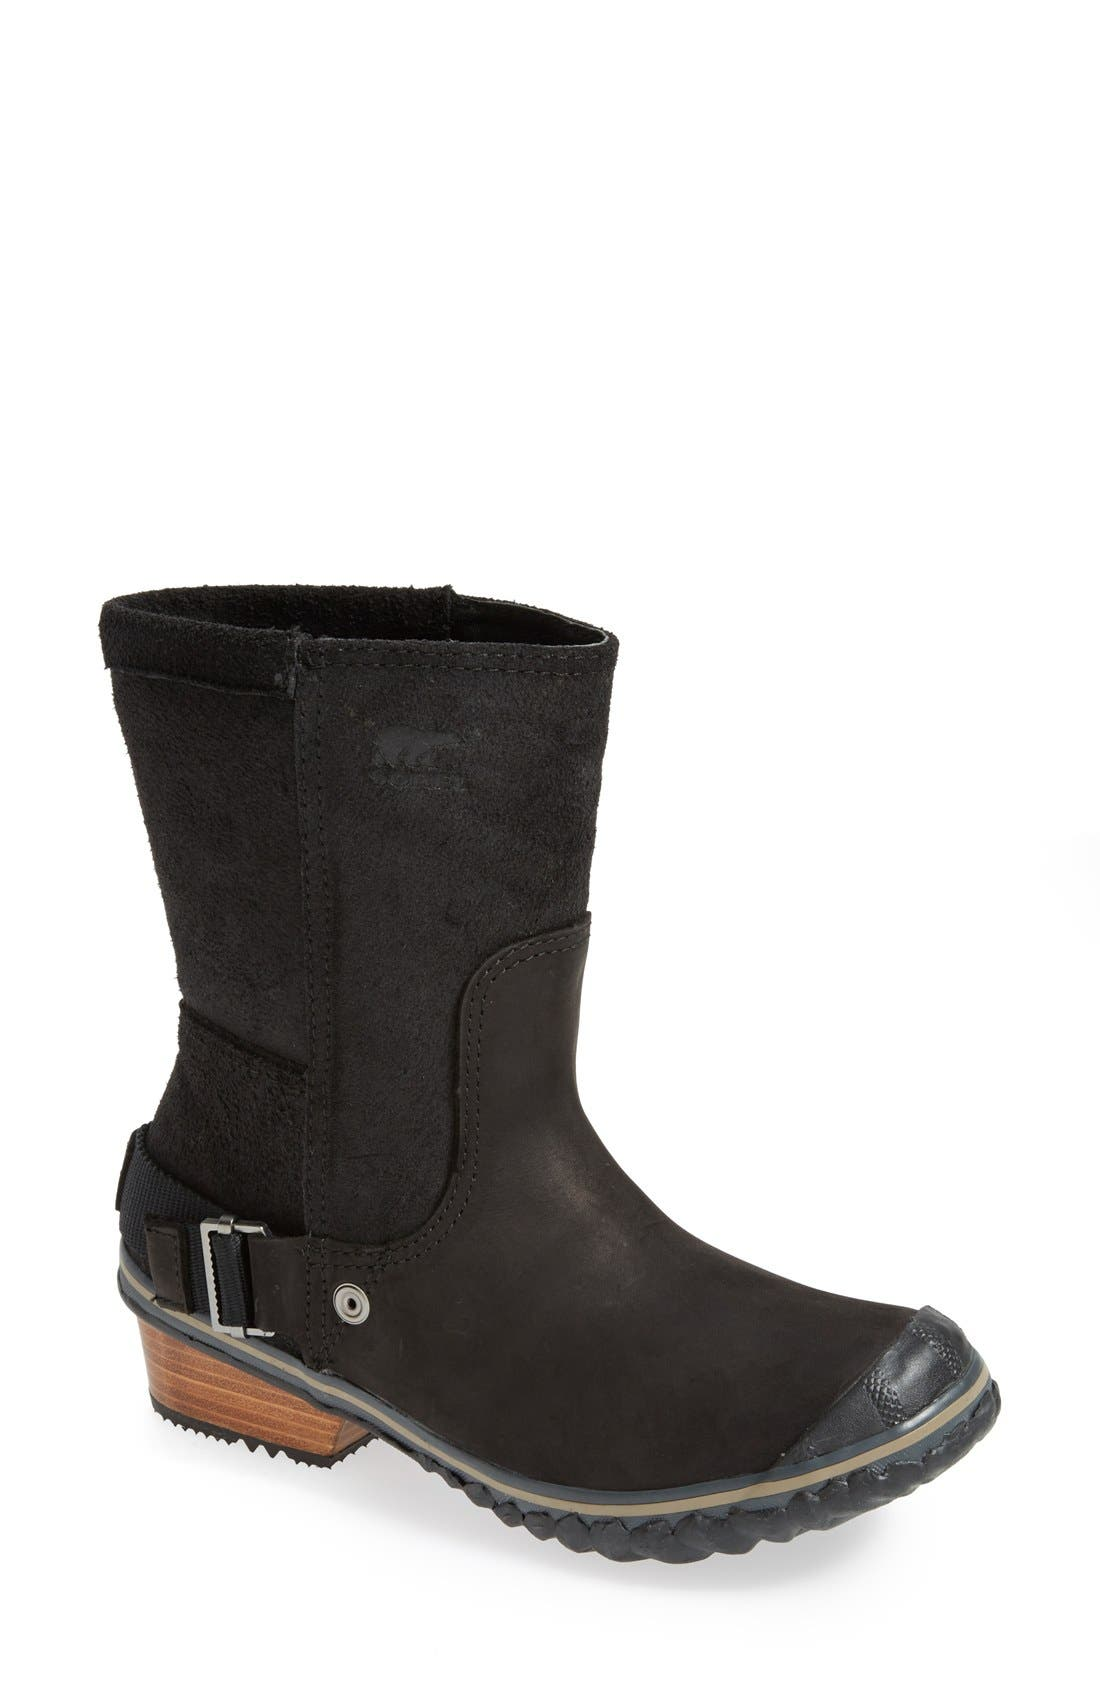 Alternate Image 1 Selected - SOREL 'Slimshortie™' Waterproof Boot (Women)